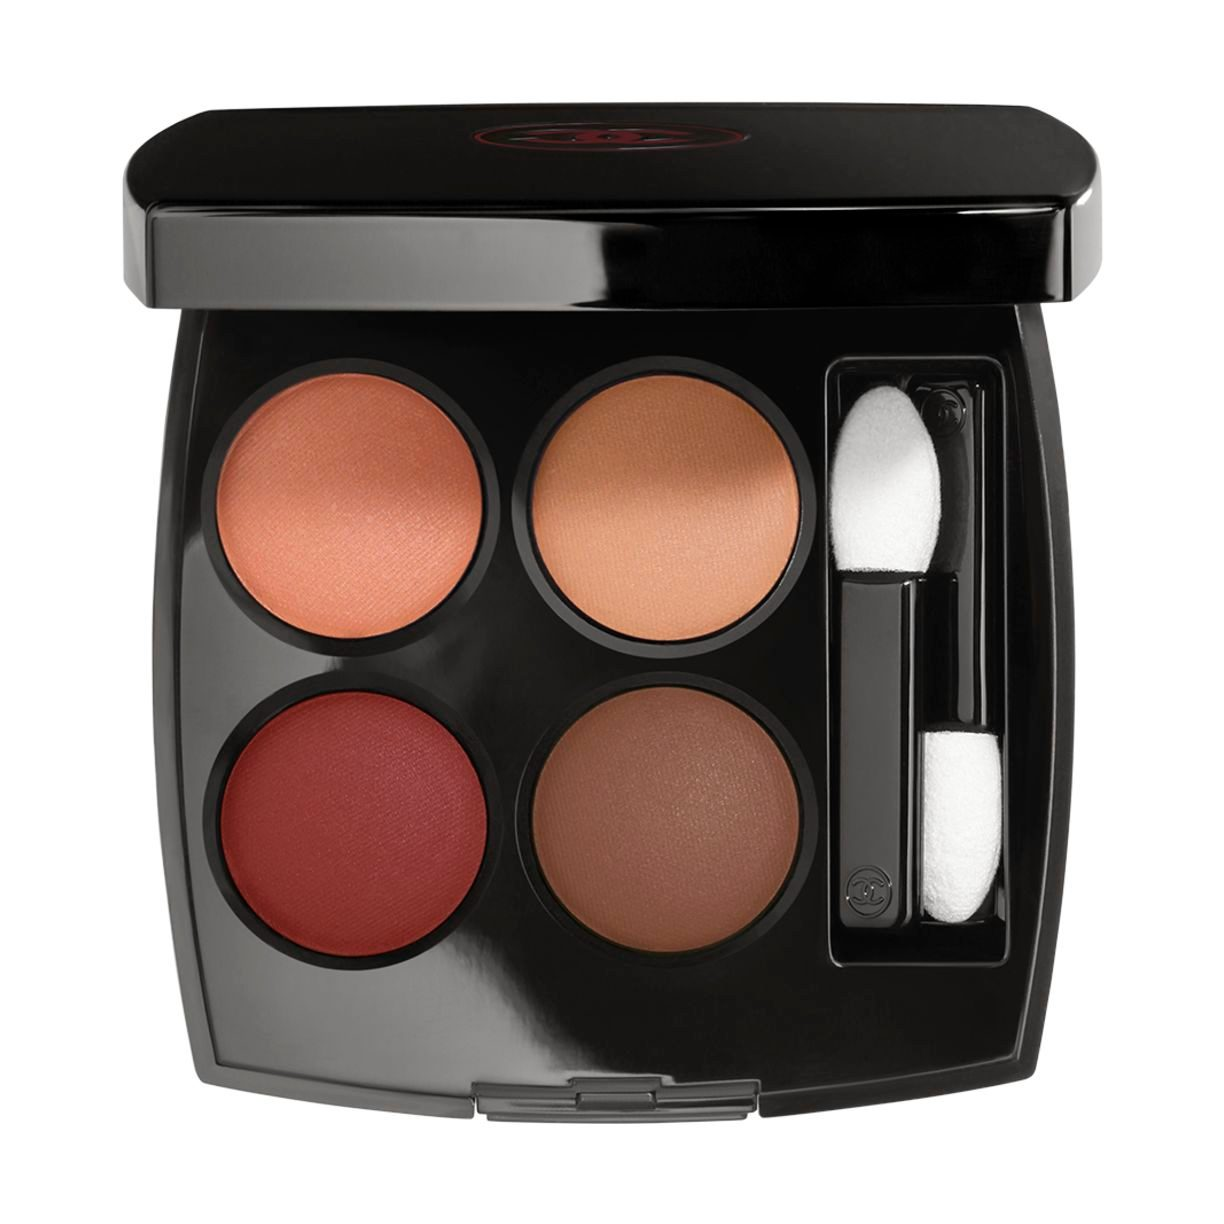 LES 4 OMBRES MULTI-EFFECT QUADRA EYESHADOW. LIMITED EDITION.